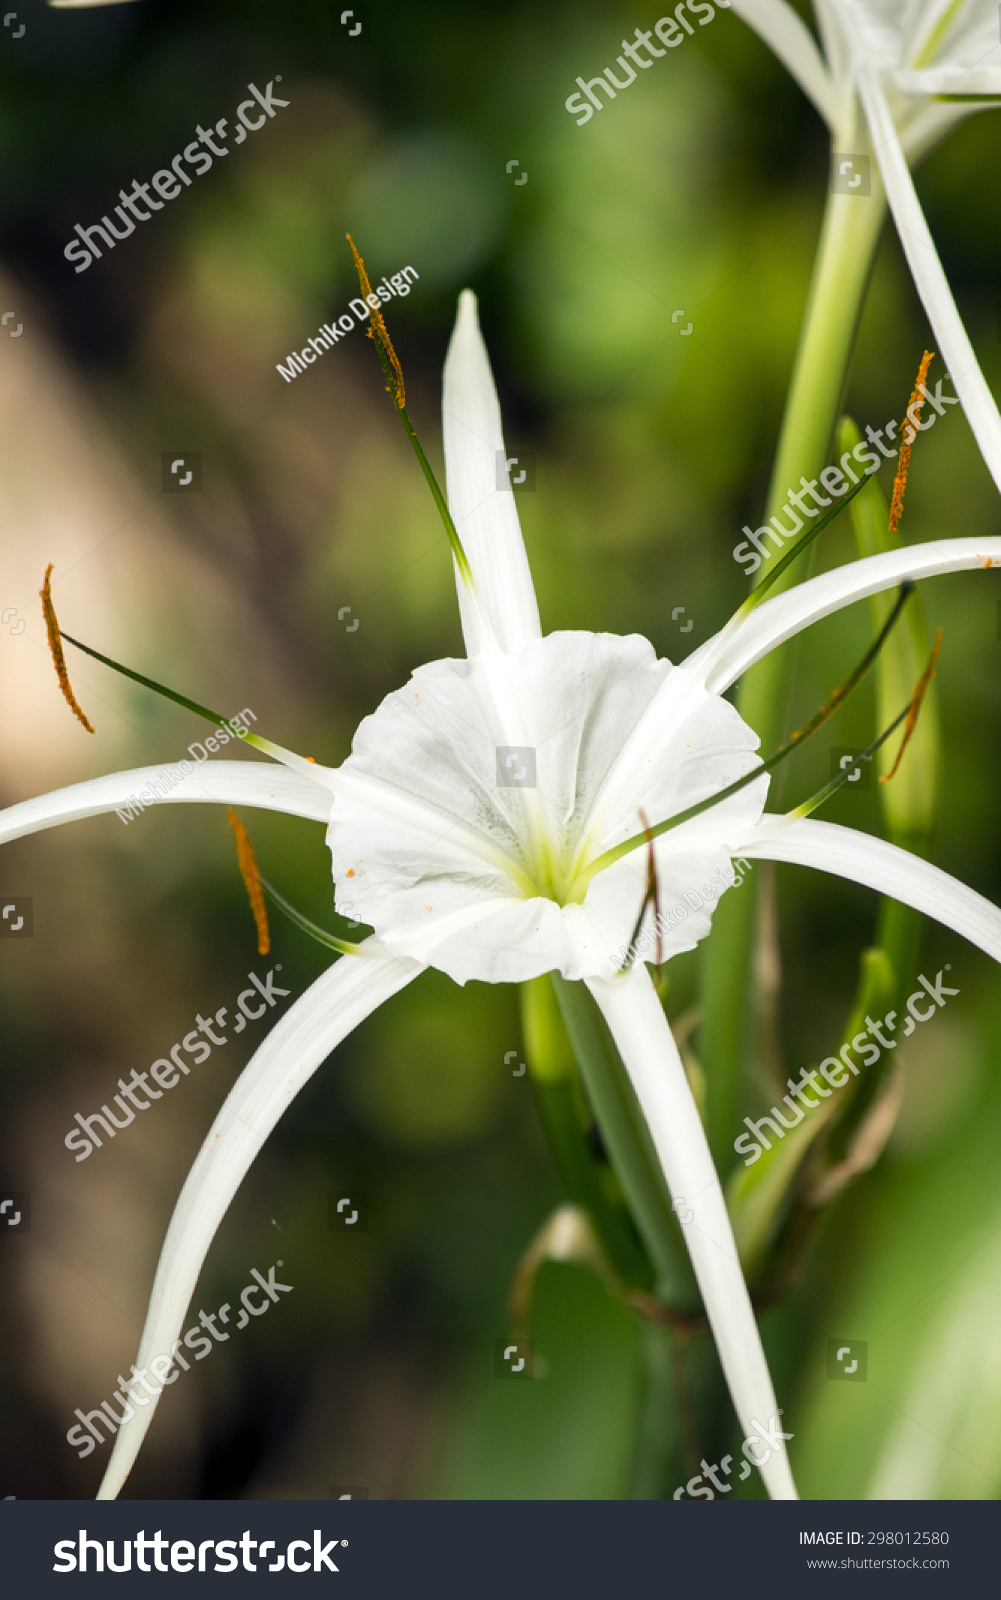 White lily like flower has long stock photo download now 298012580 white lily like flower has long skinny petals spider lily izmirmasajfo